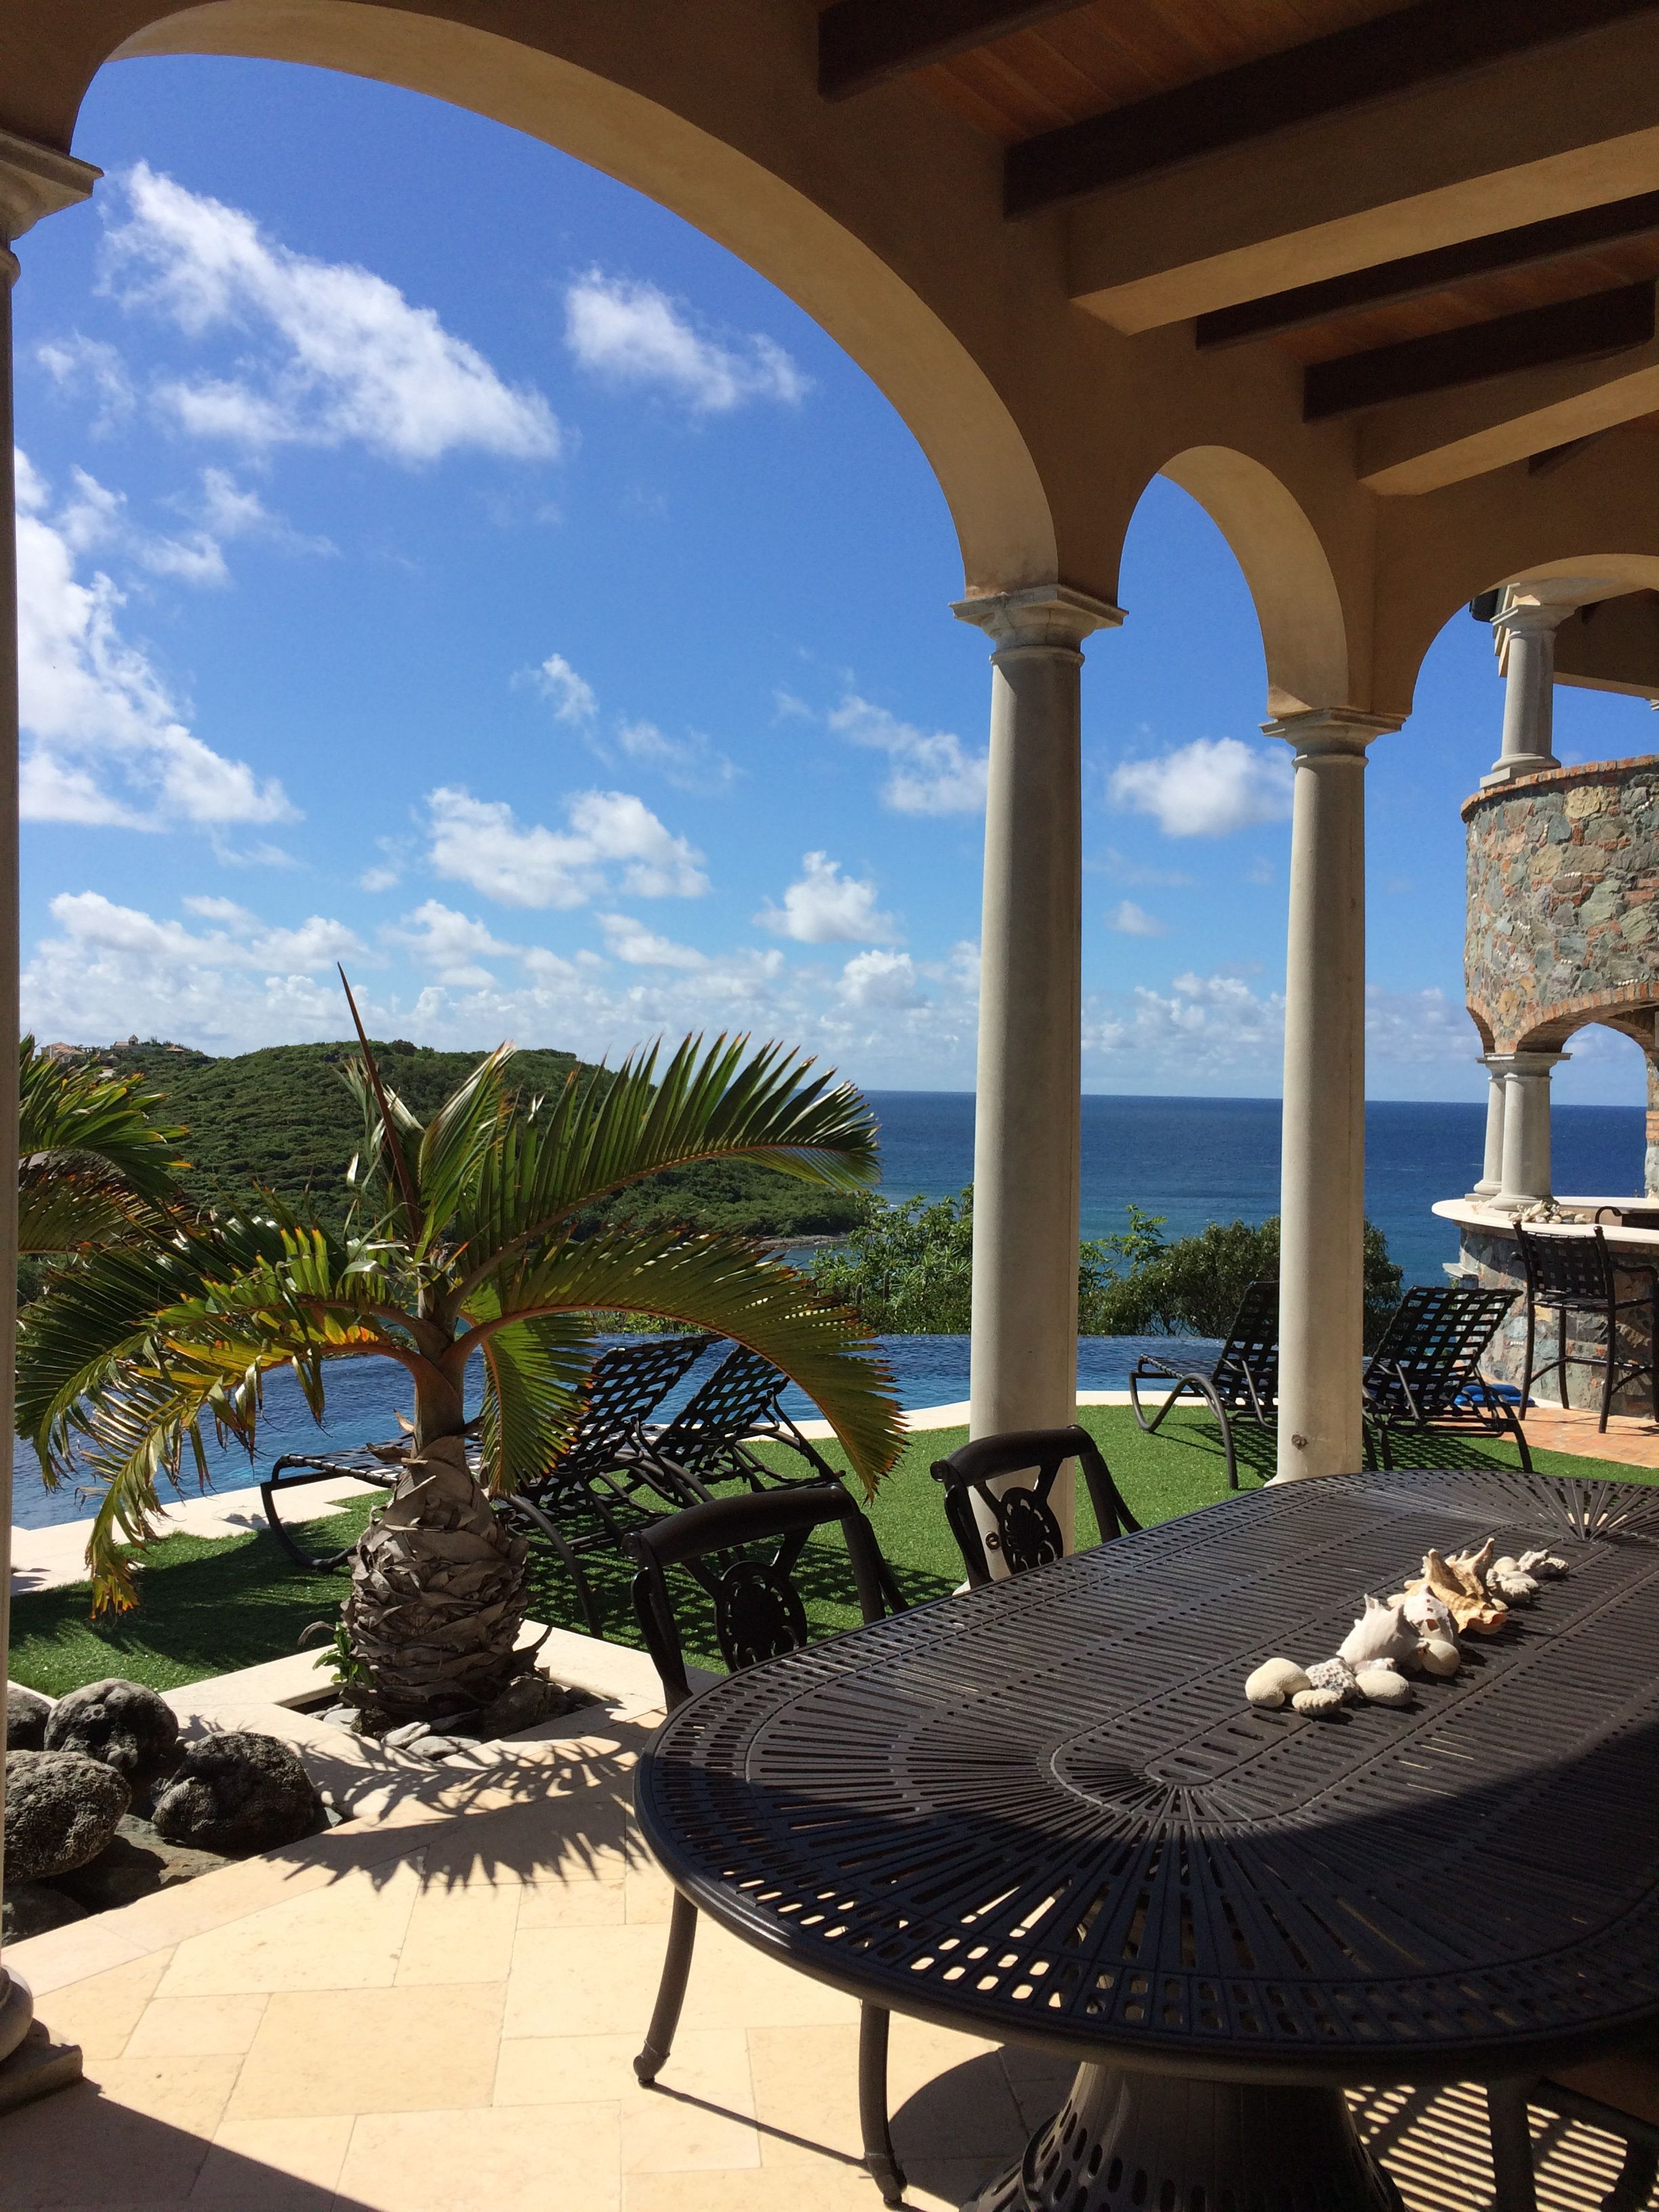 113 Best St John Rental Villas Images On Pinterest | Mansions, Villa And  Villas